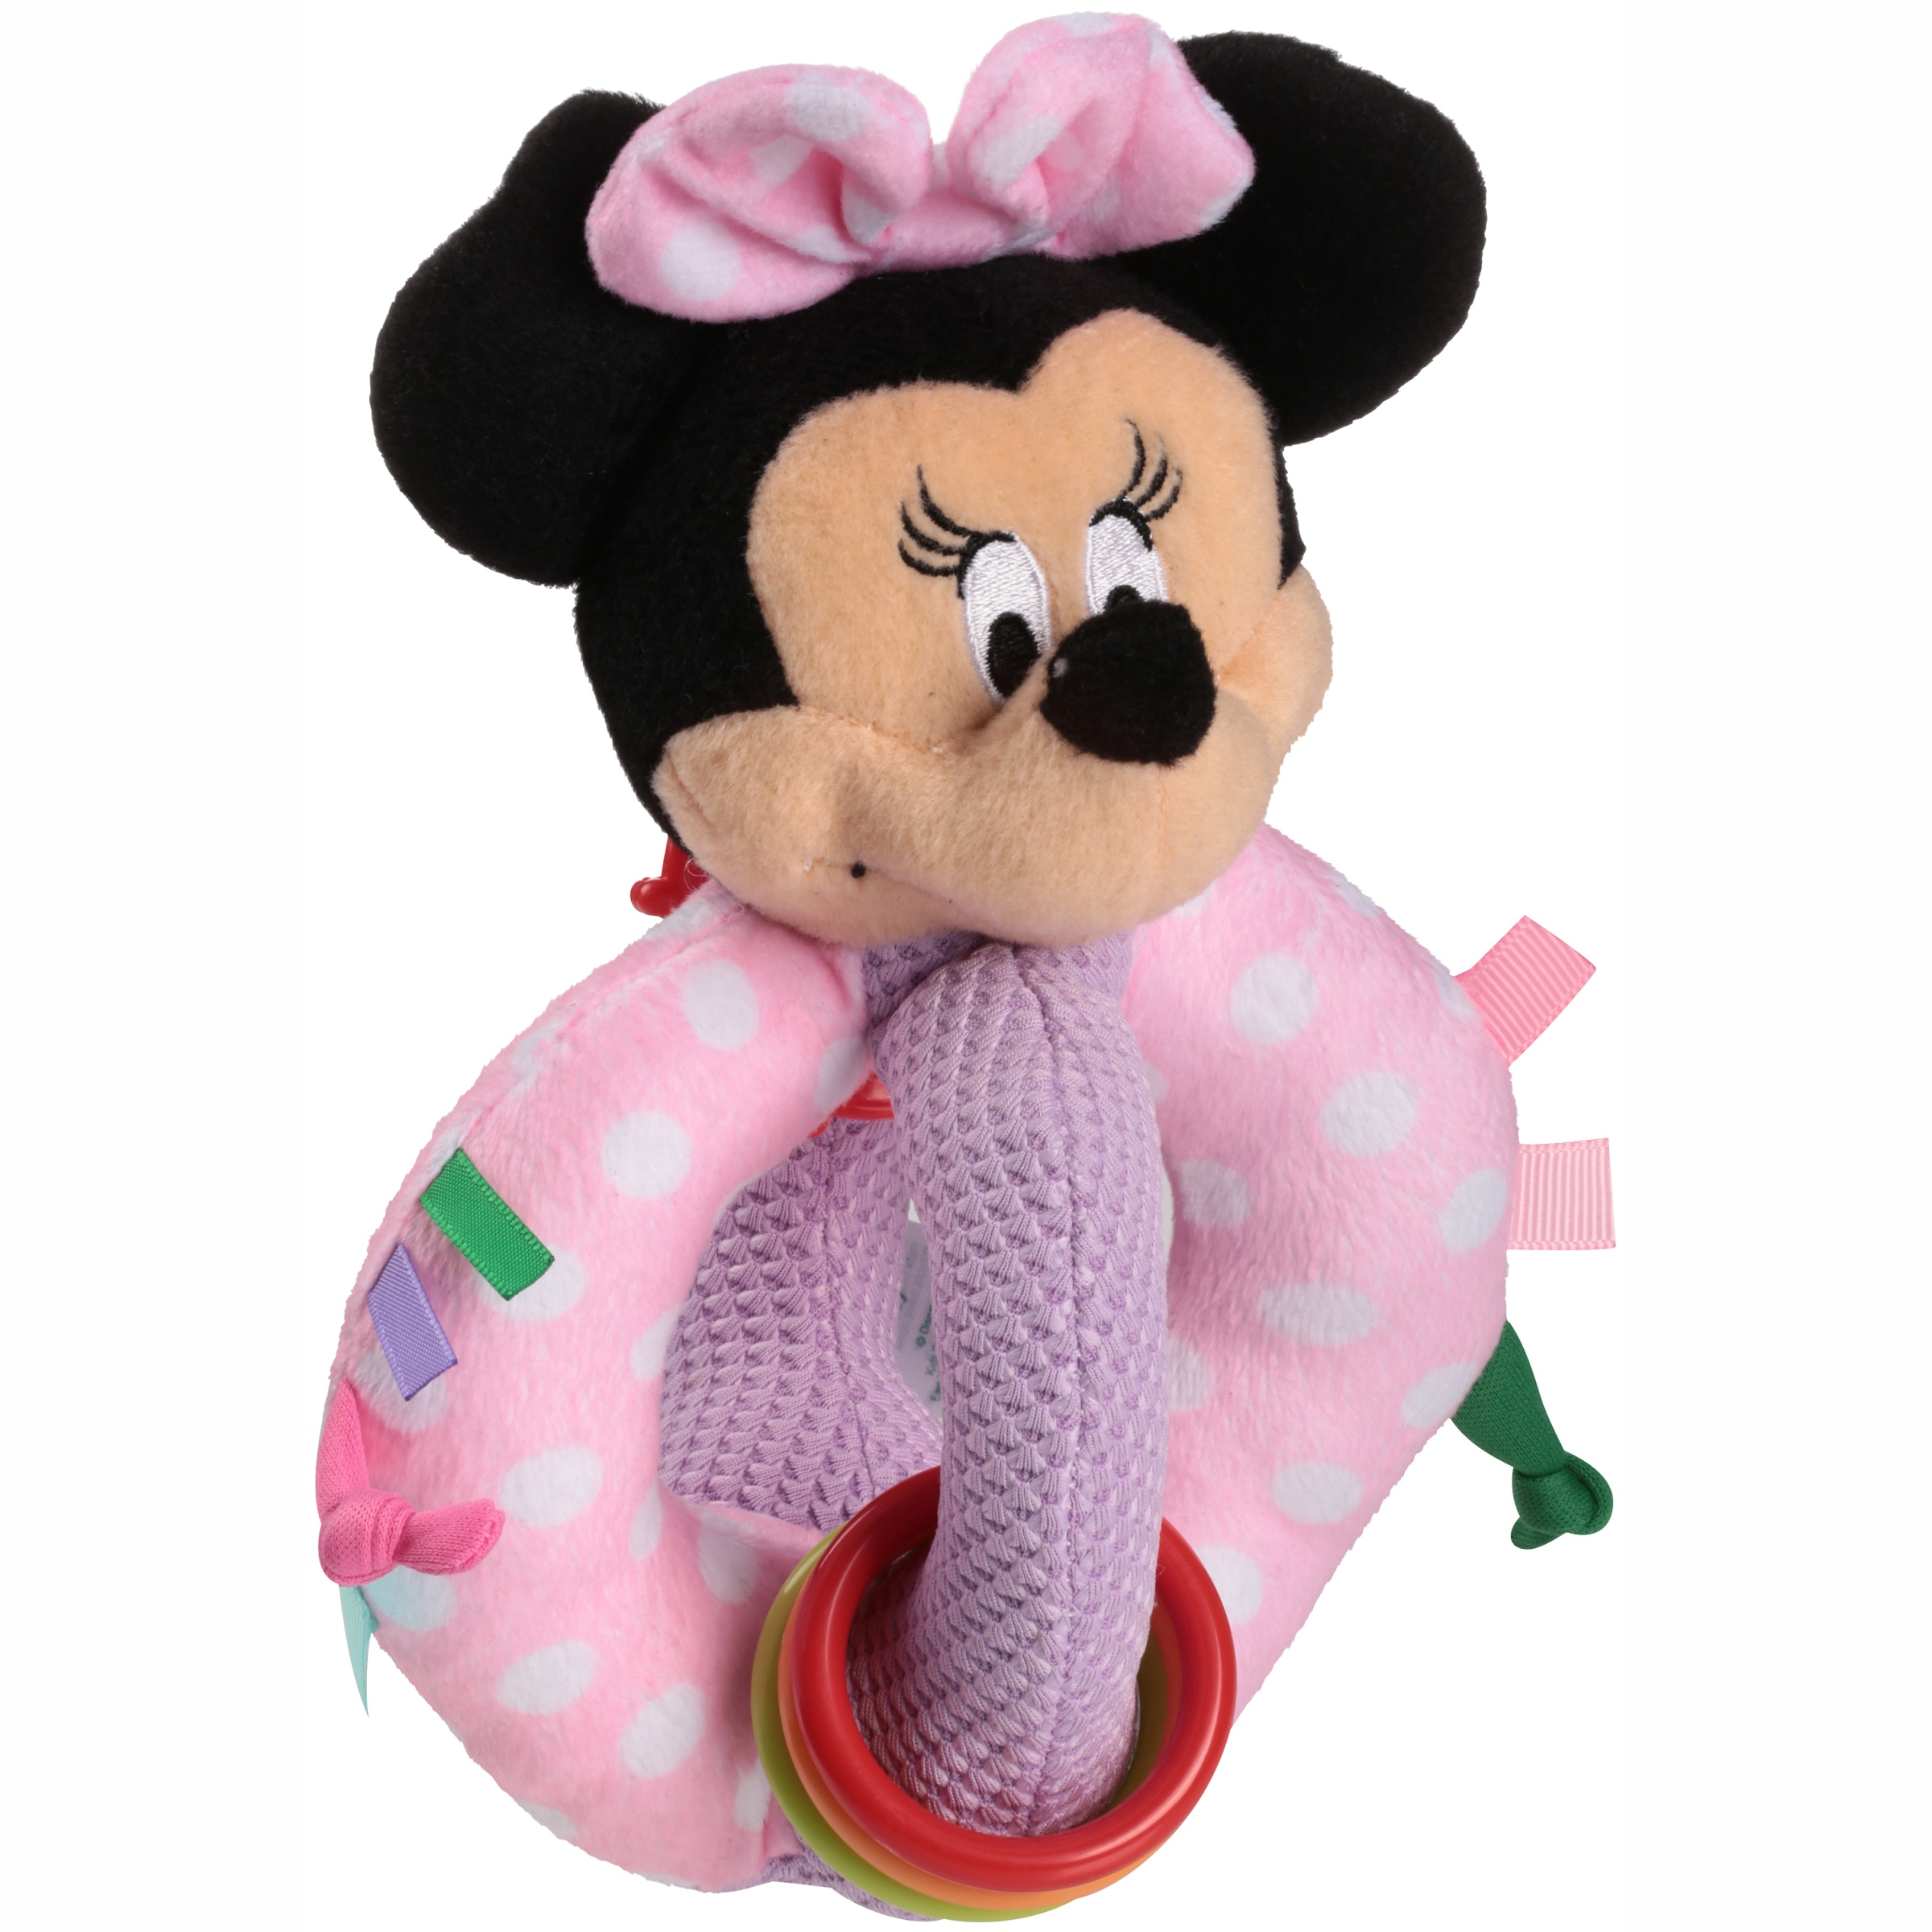 Disney Baby Minnie Mouse Baby Toy